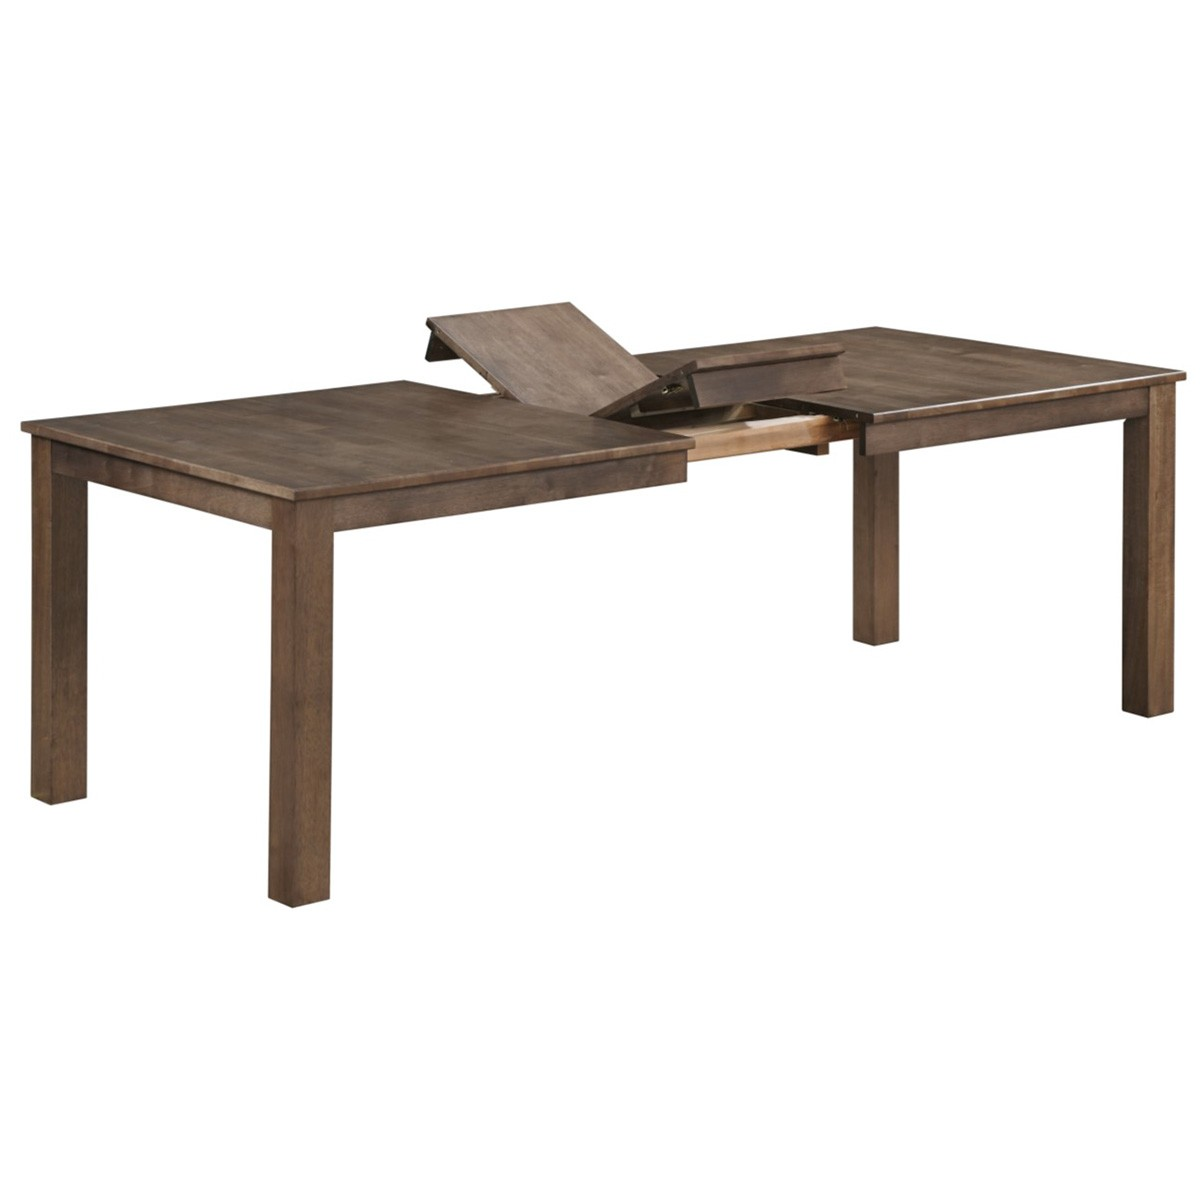 Chisholm Timber Extensible Dining Table, 180-218cm